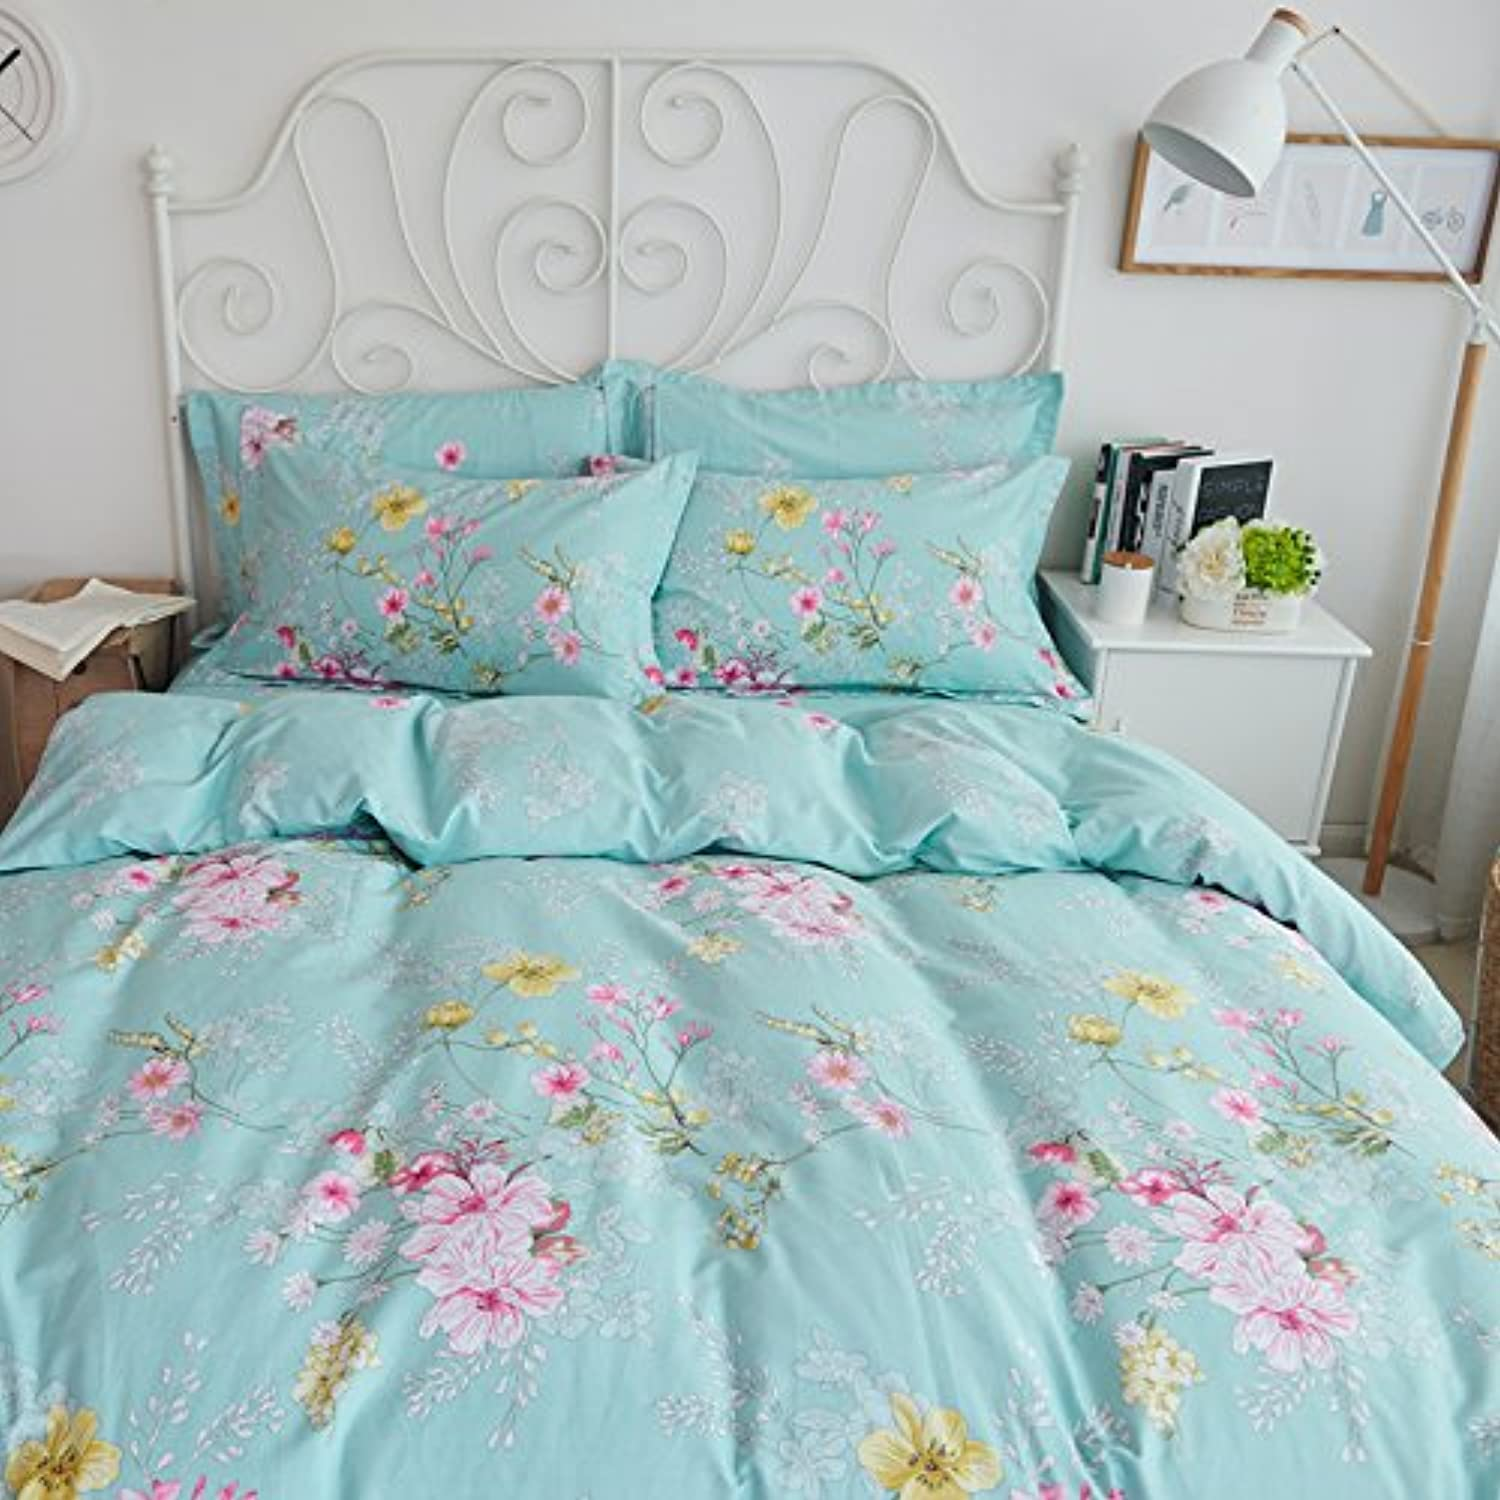 Lovely Cotton Duvet Cover Sets Bed Sheets & Pillowcase Sets,D Full B072KHF9SR